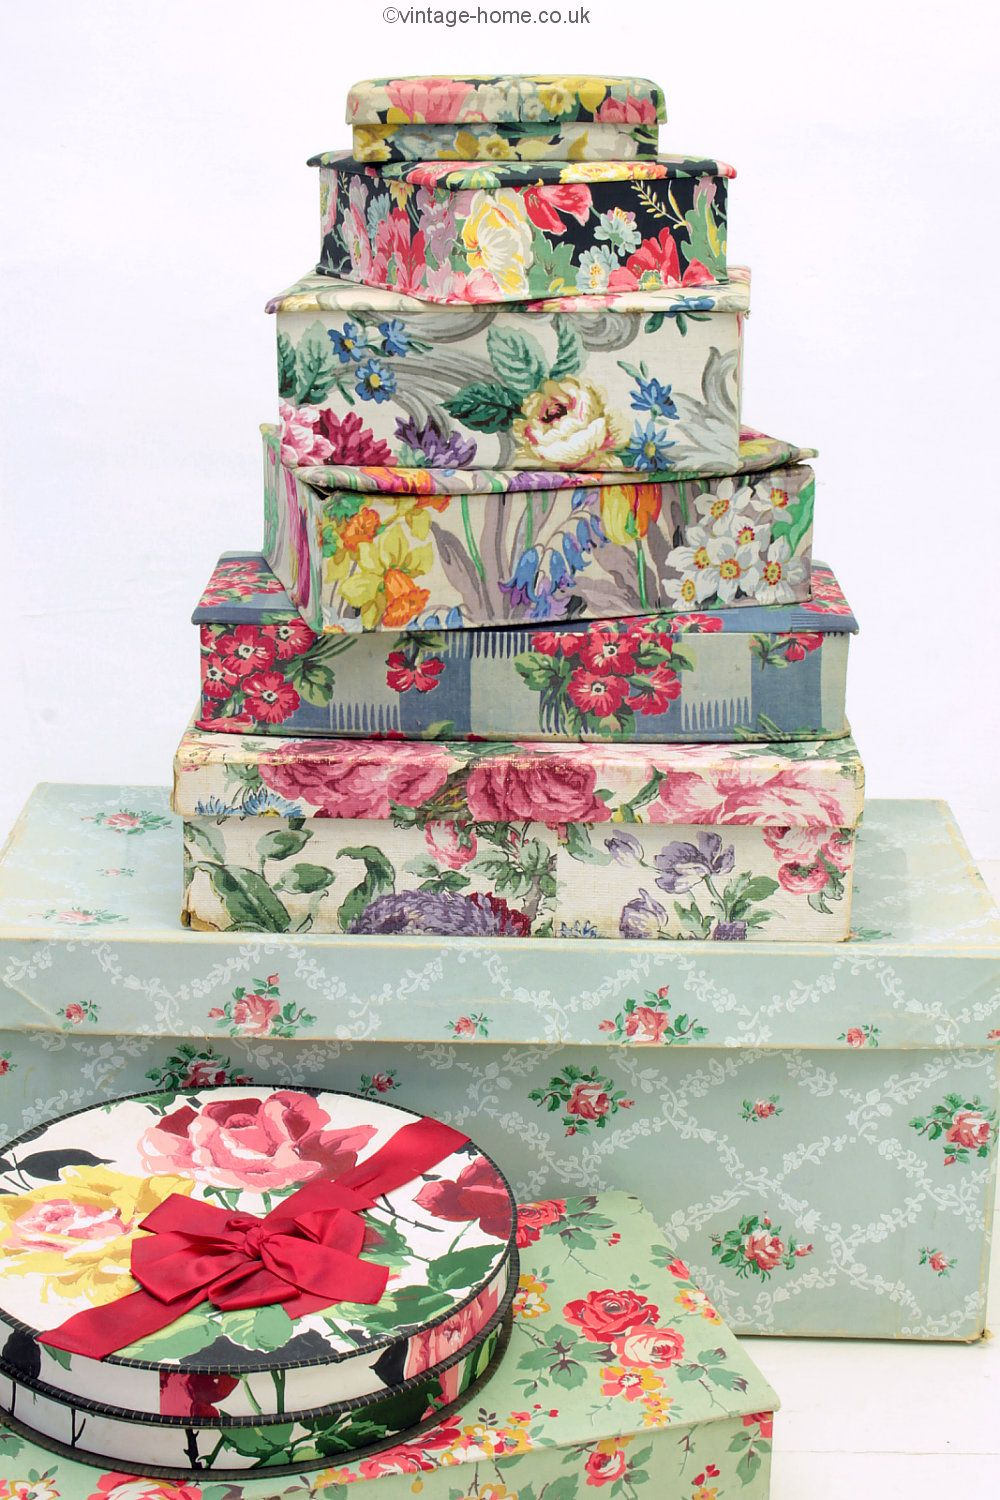 A few of my time-worn vintage fabric and wallpaper covered boxes ...